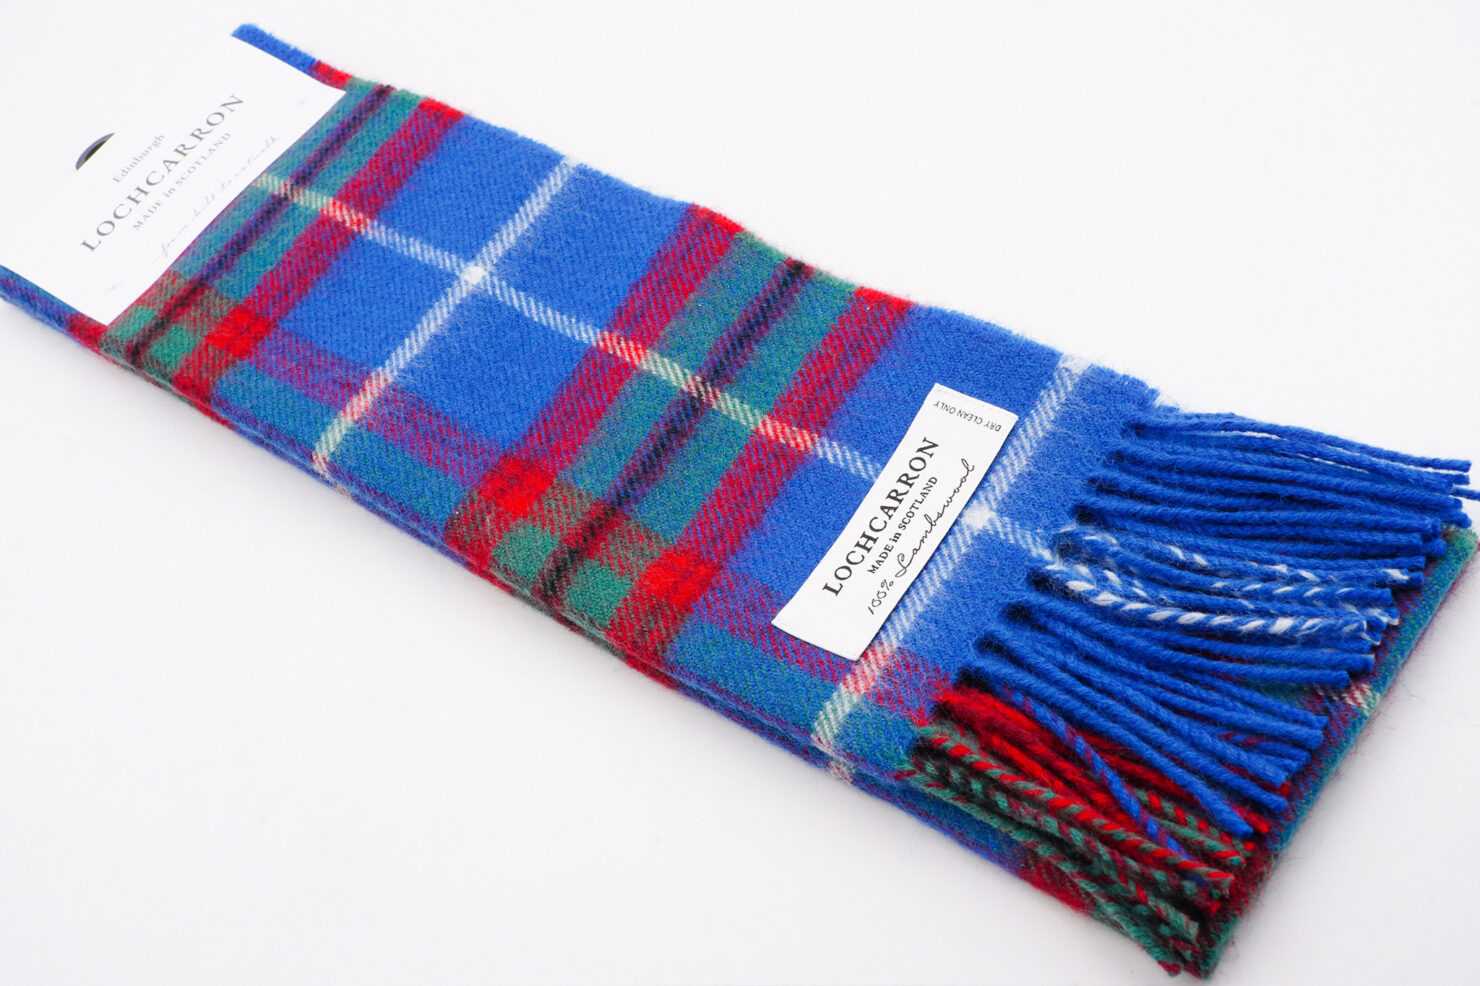 BRUSHWOOL LONG EDINBURGH SCARF - LOCHCARRON OF SCOTLAND